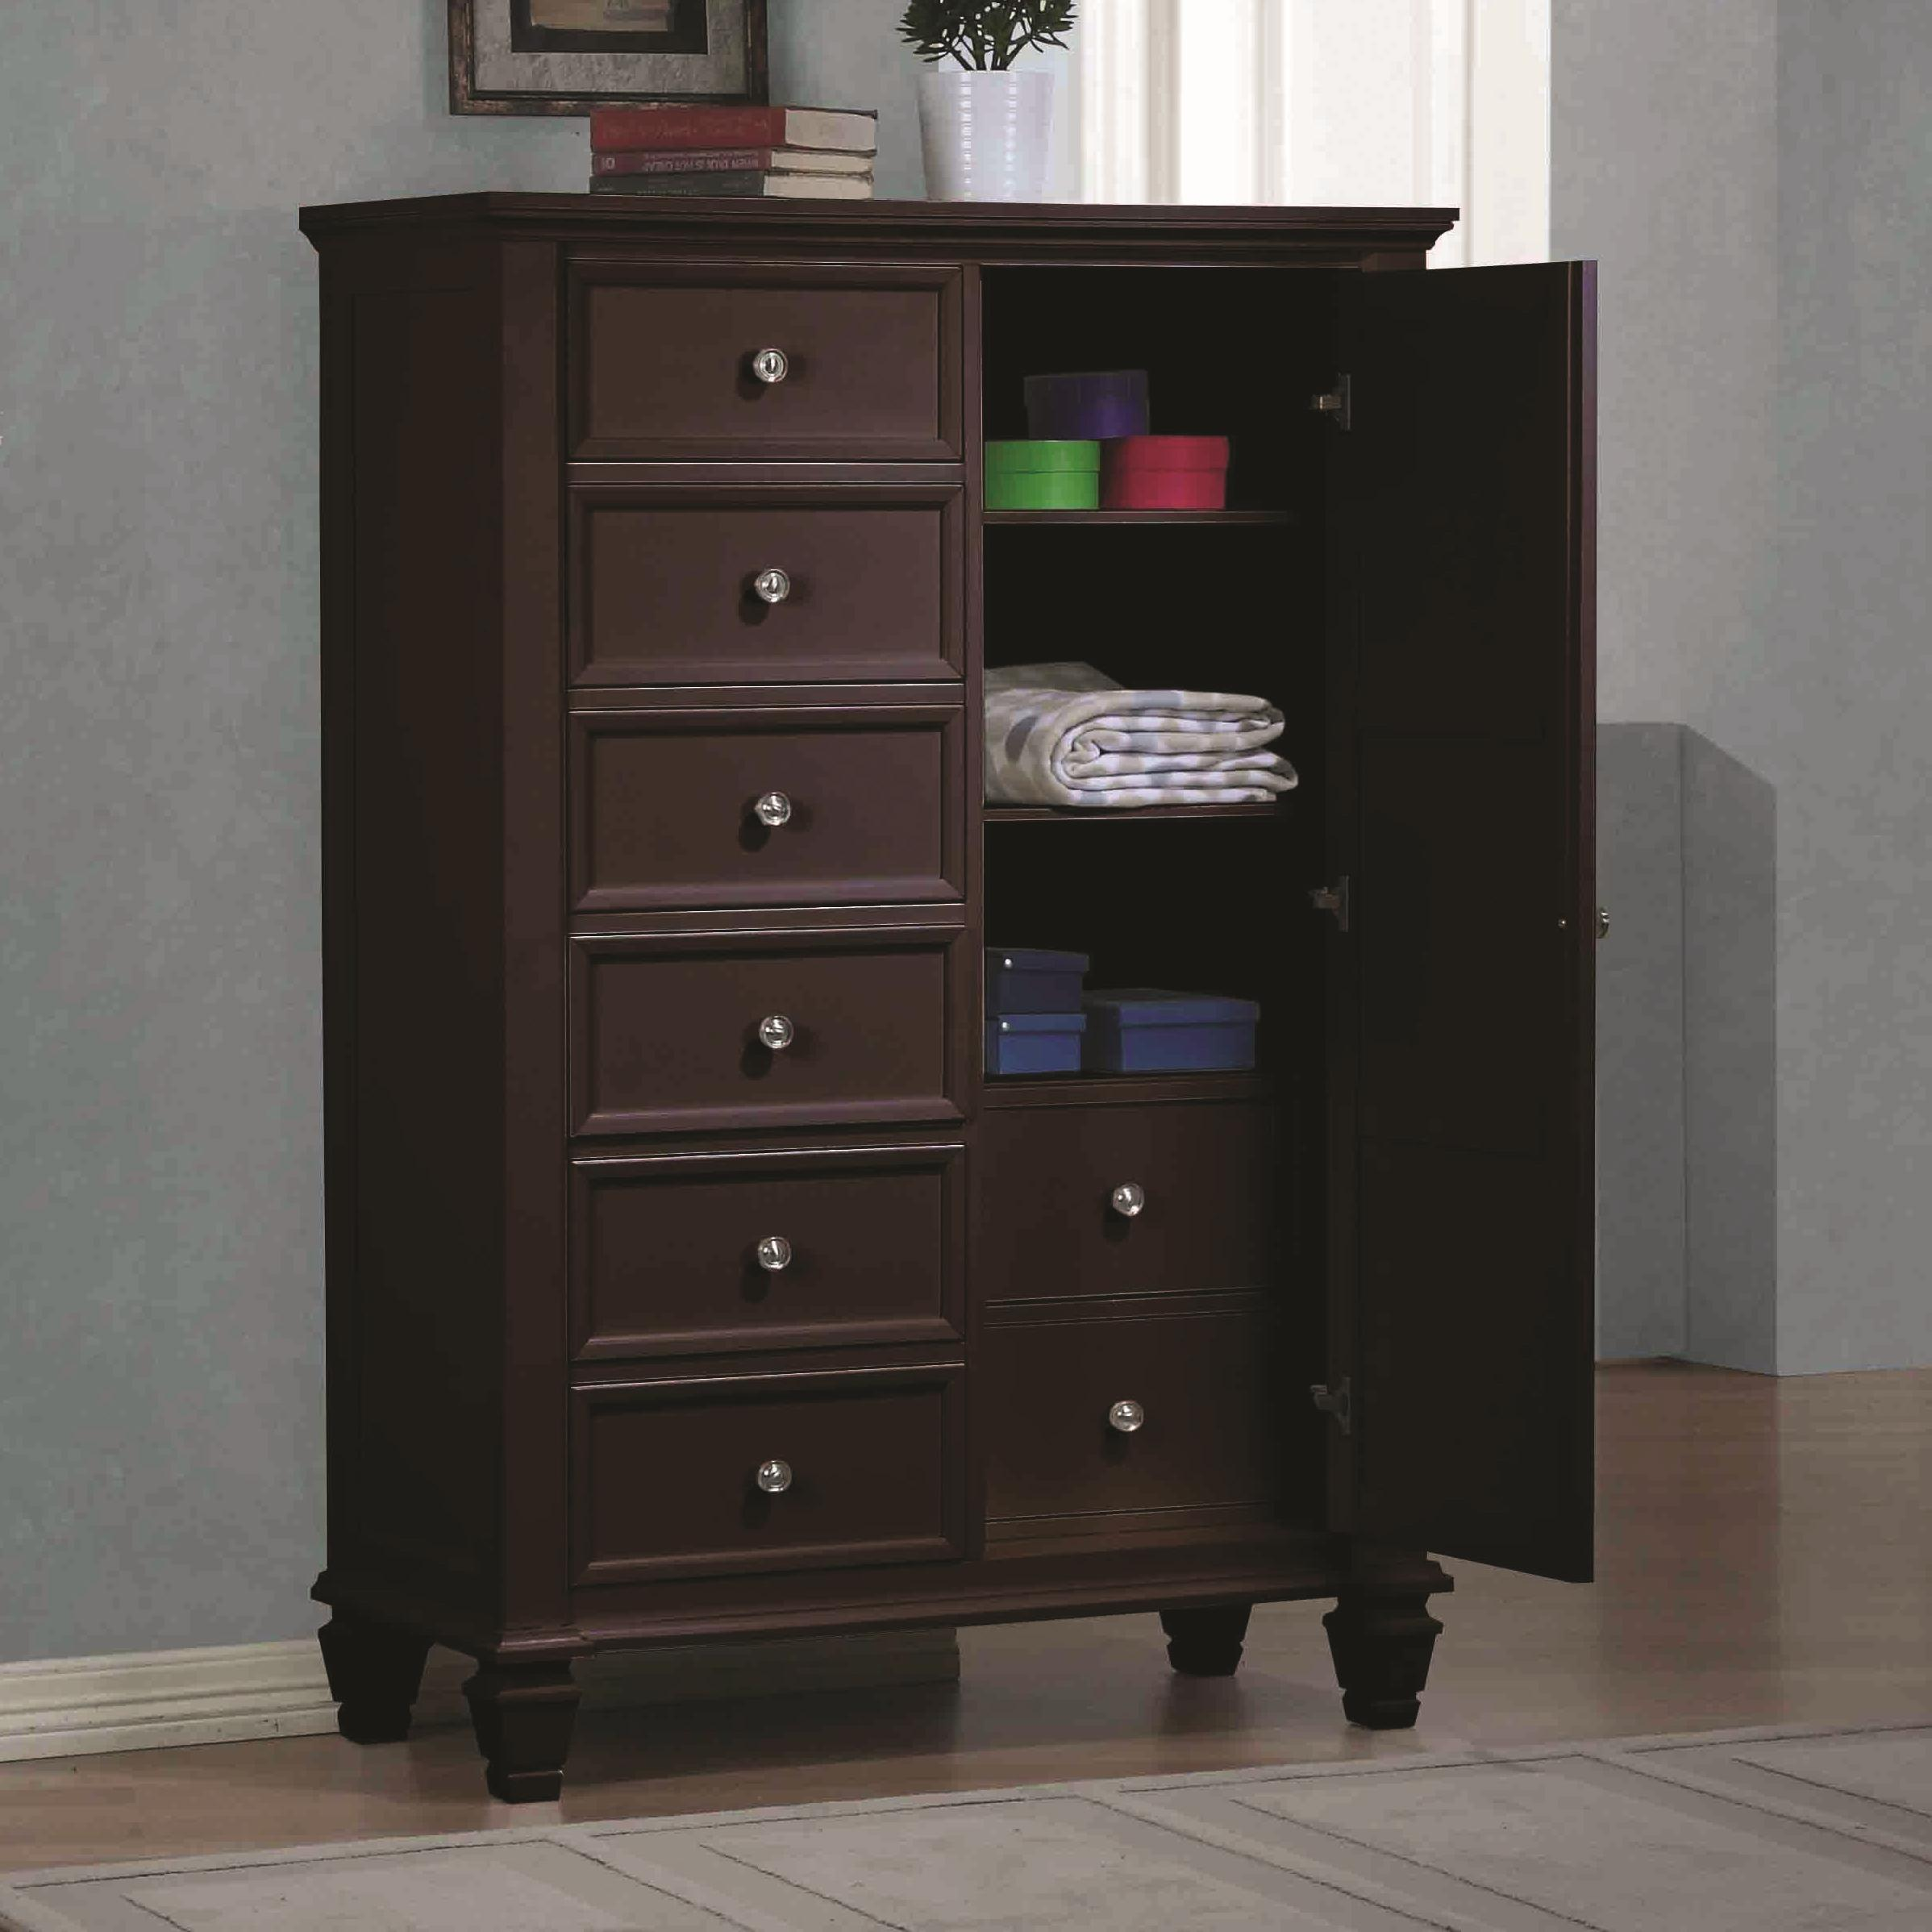 Sandy Beach Door Dresser by Coaster at Prime Brothers Furniture